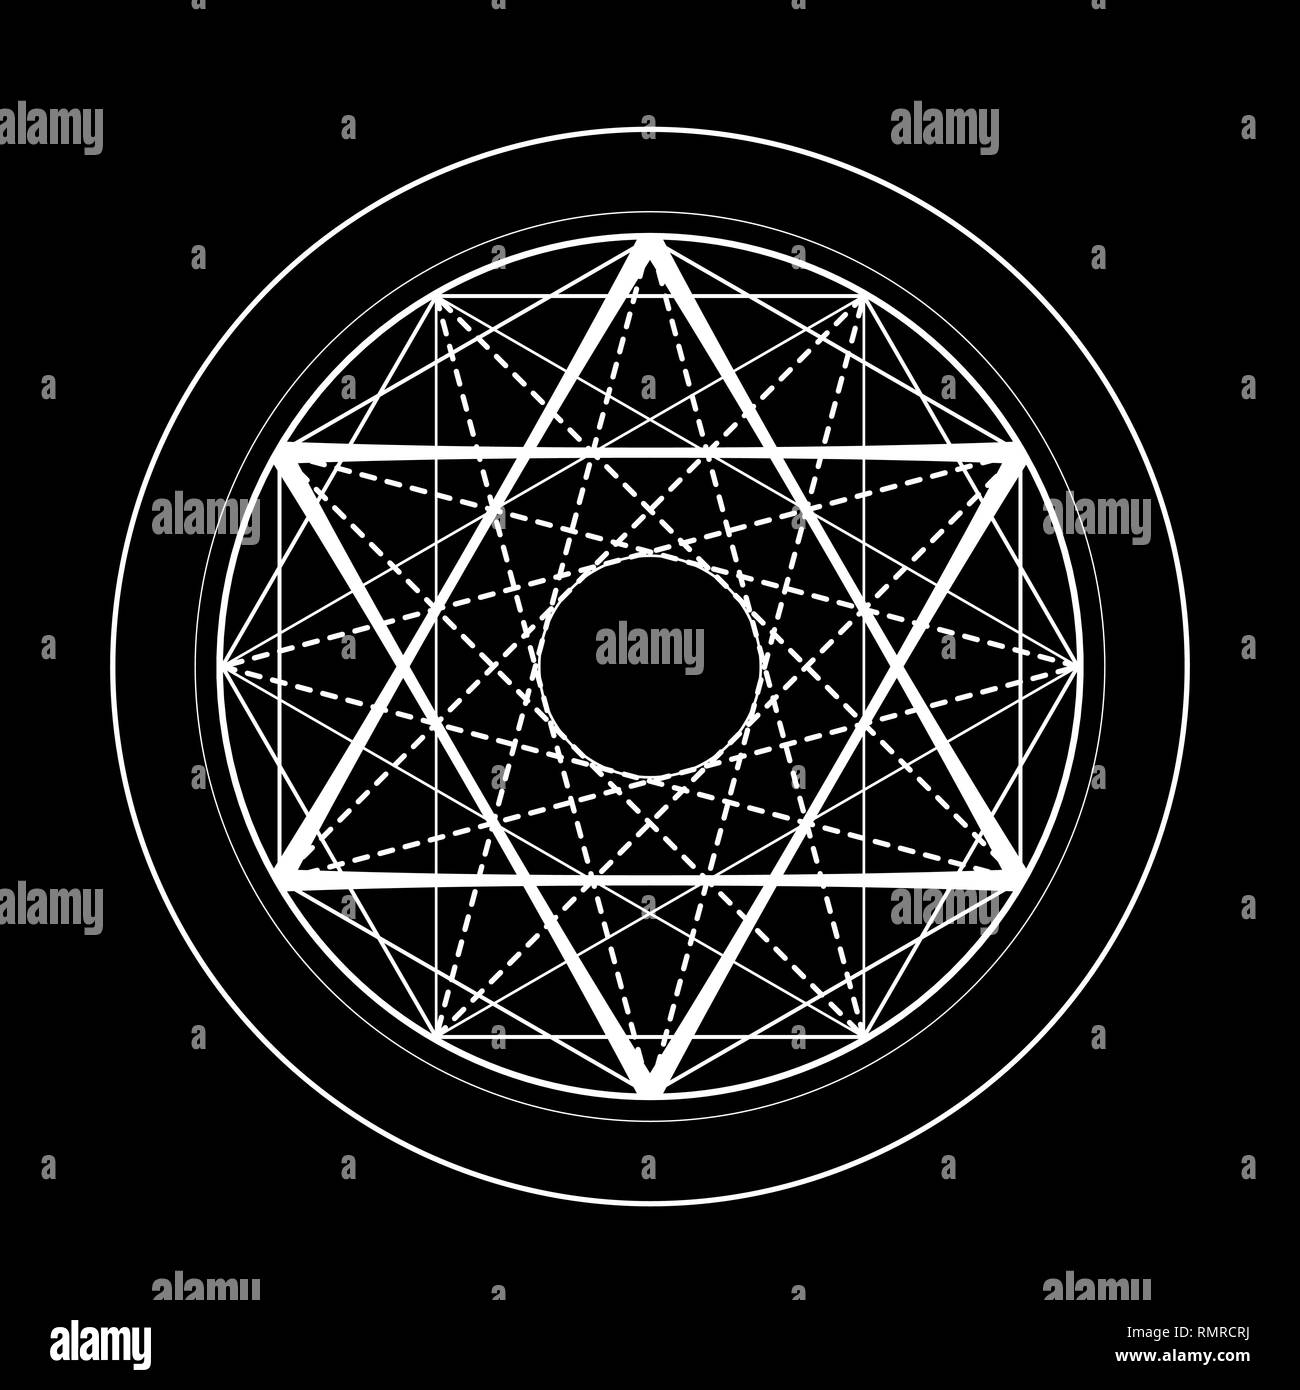 sacred geometry david star symbol illustration - Stock Image